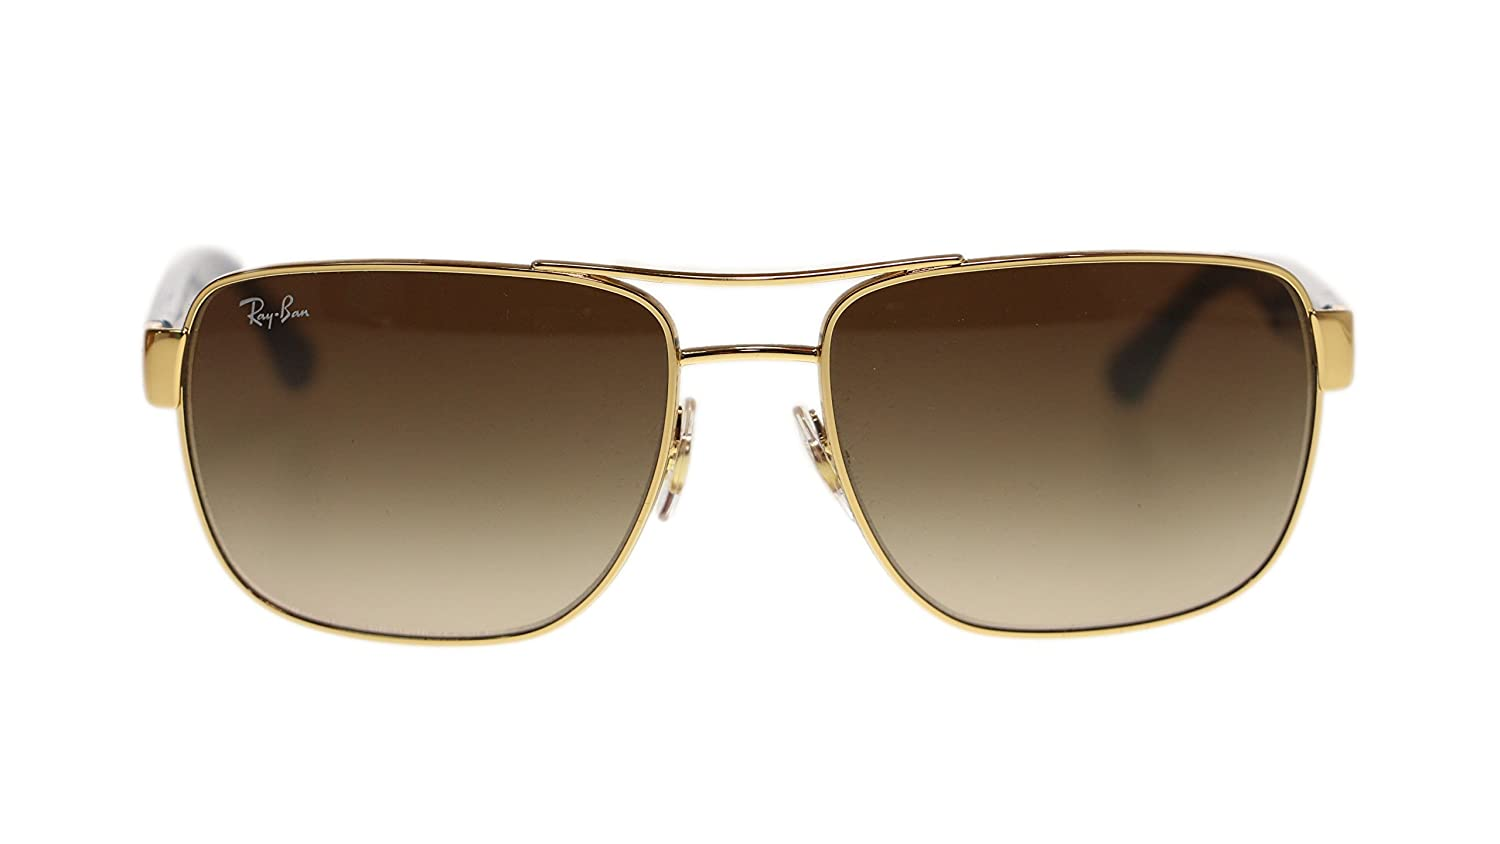 43cbdf40014 Ray Ban Mens Sunglasses RB3530 001 13 Gold Brown Gradient Lens 58mm  Authentic  Amazon.ca  Clothing   Accessories